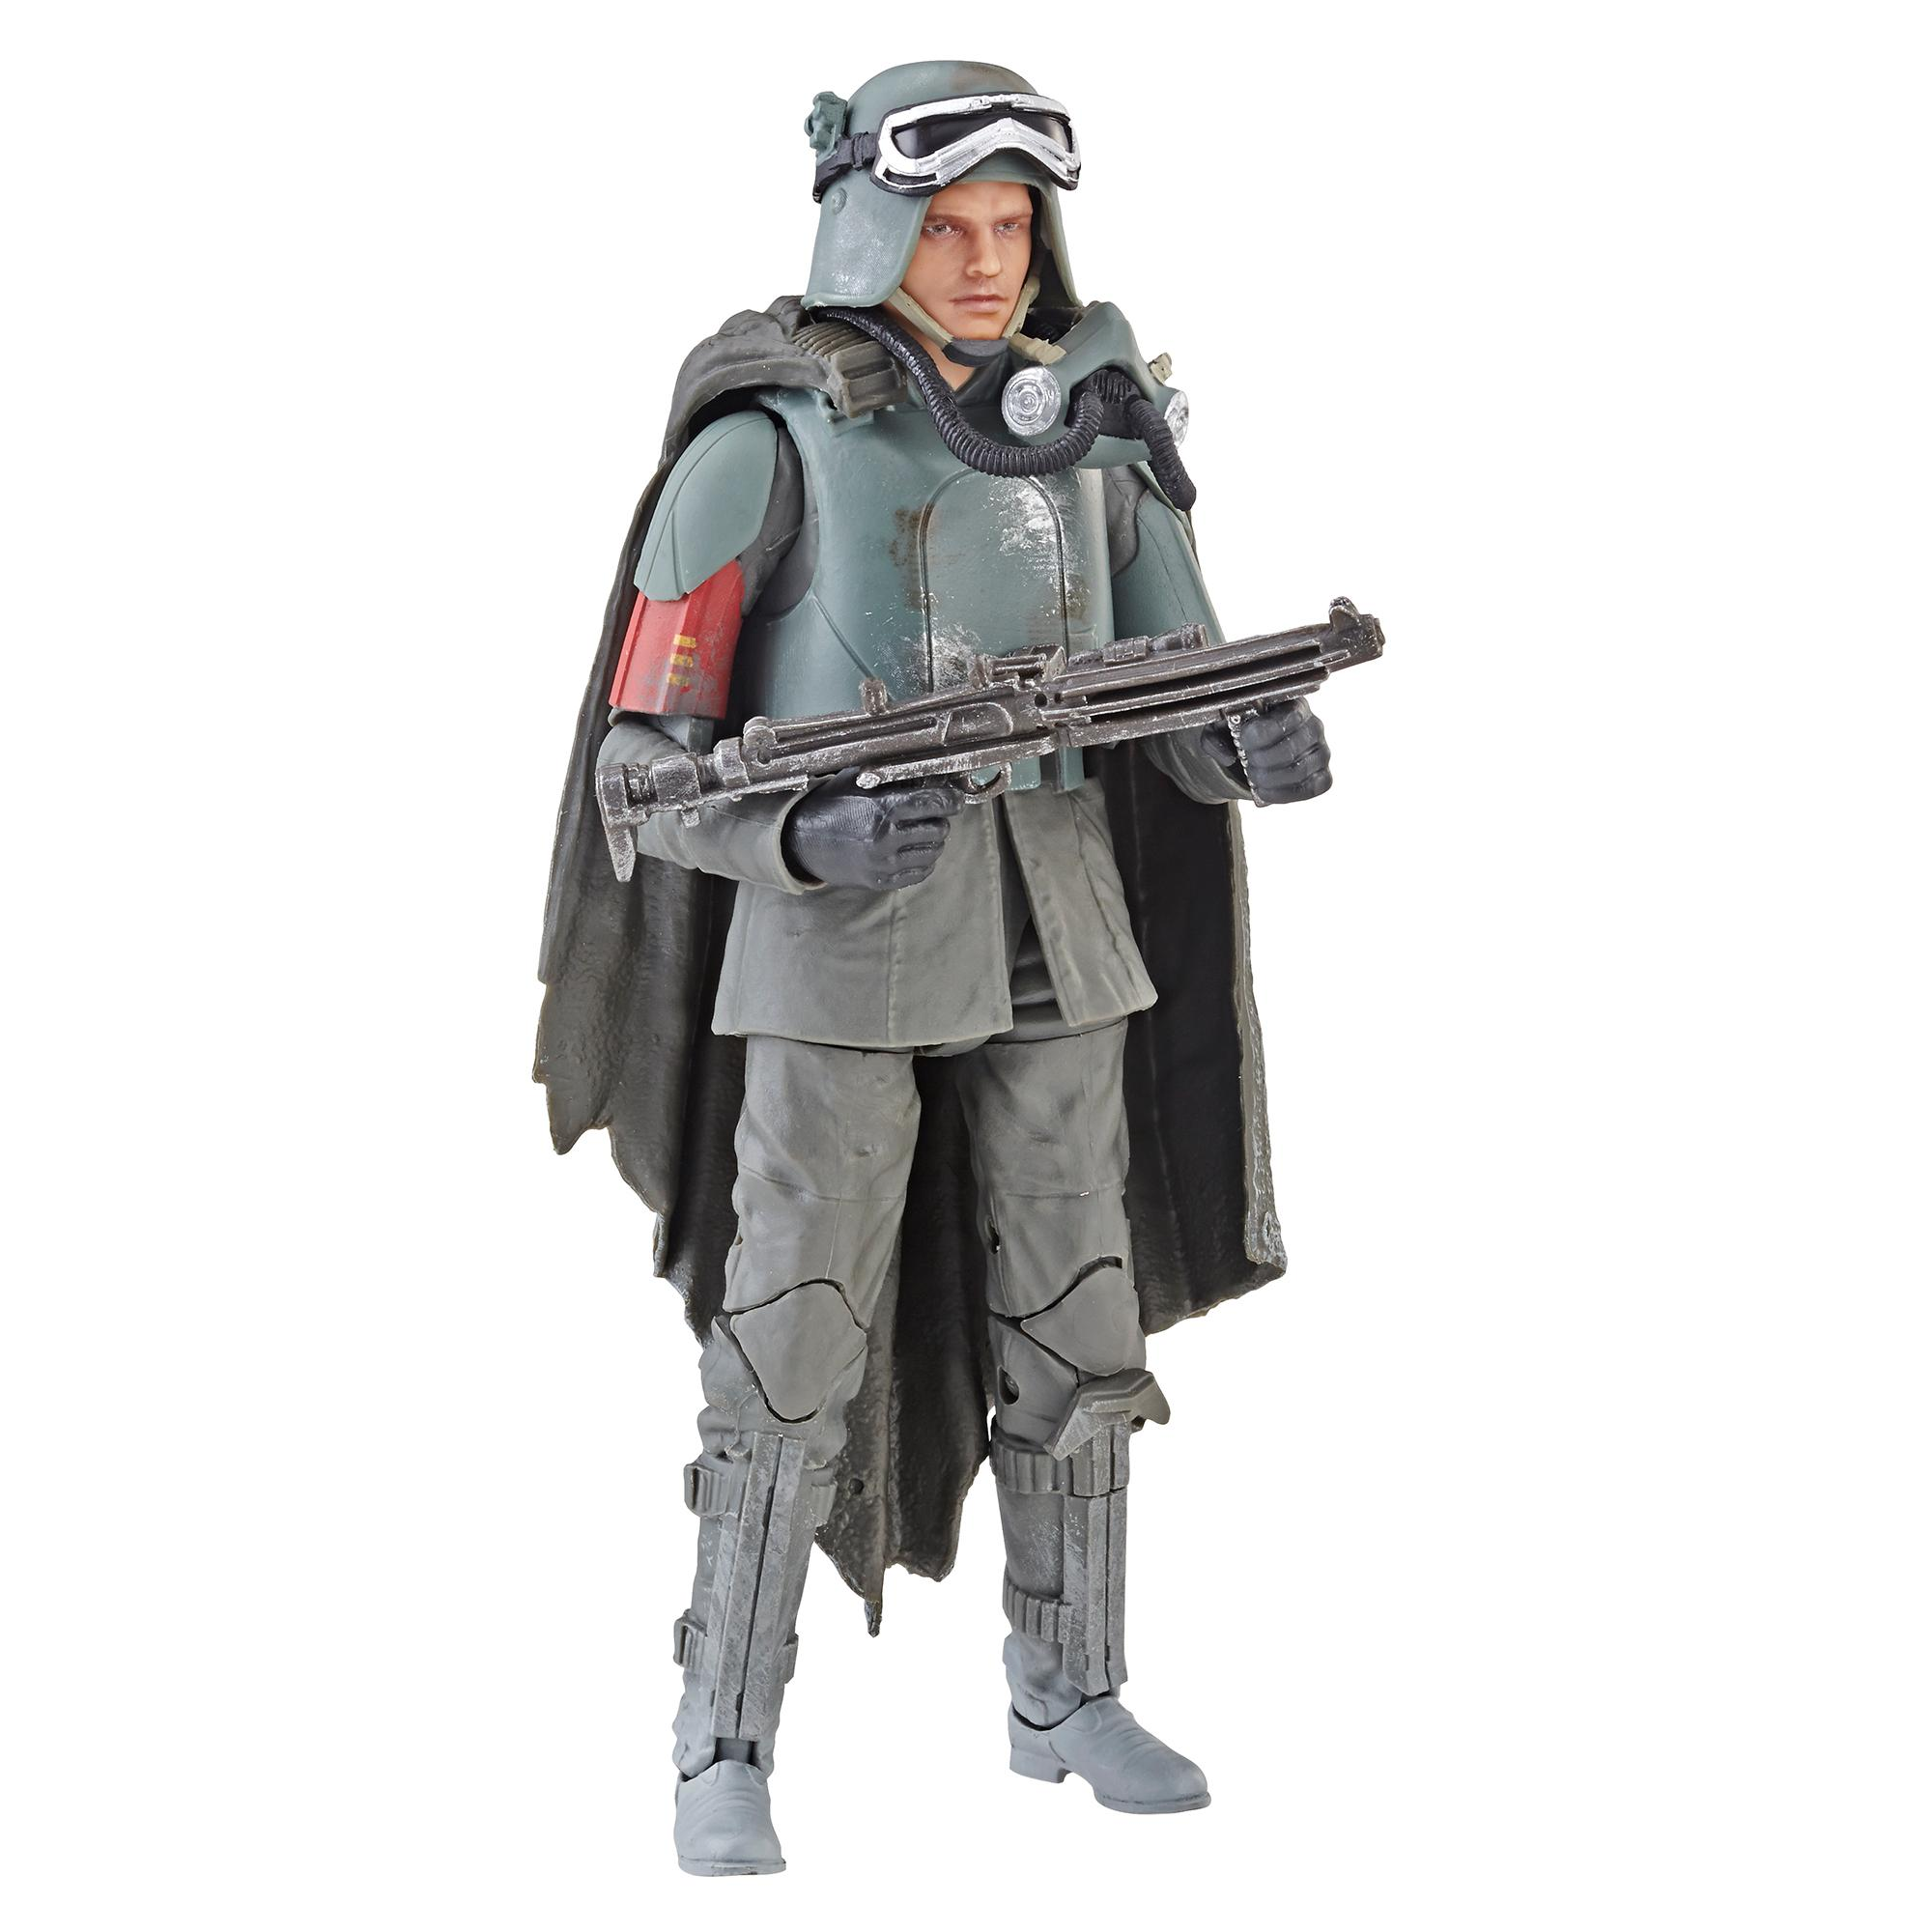 Star Wars The Black Series 6-inch Han Solo (Mimban) Figure